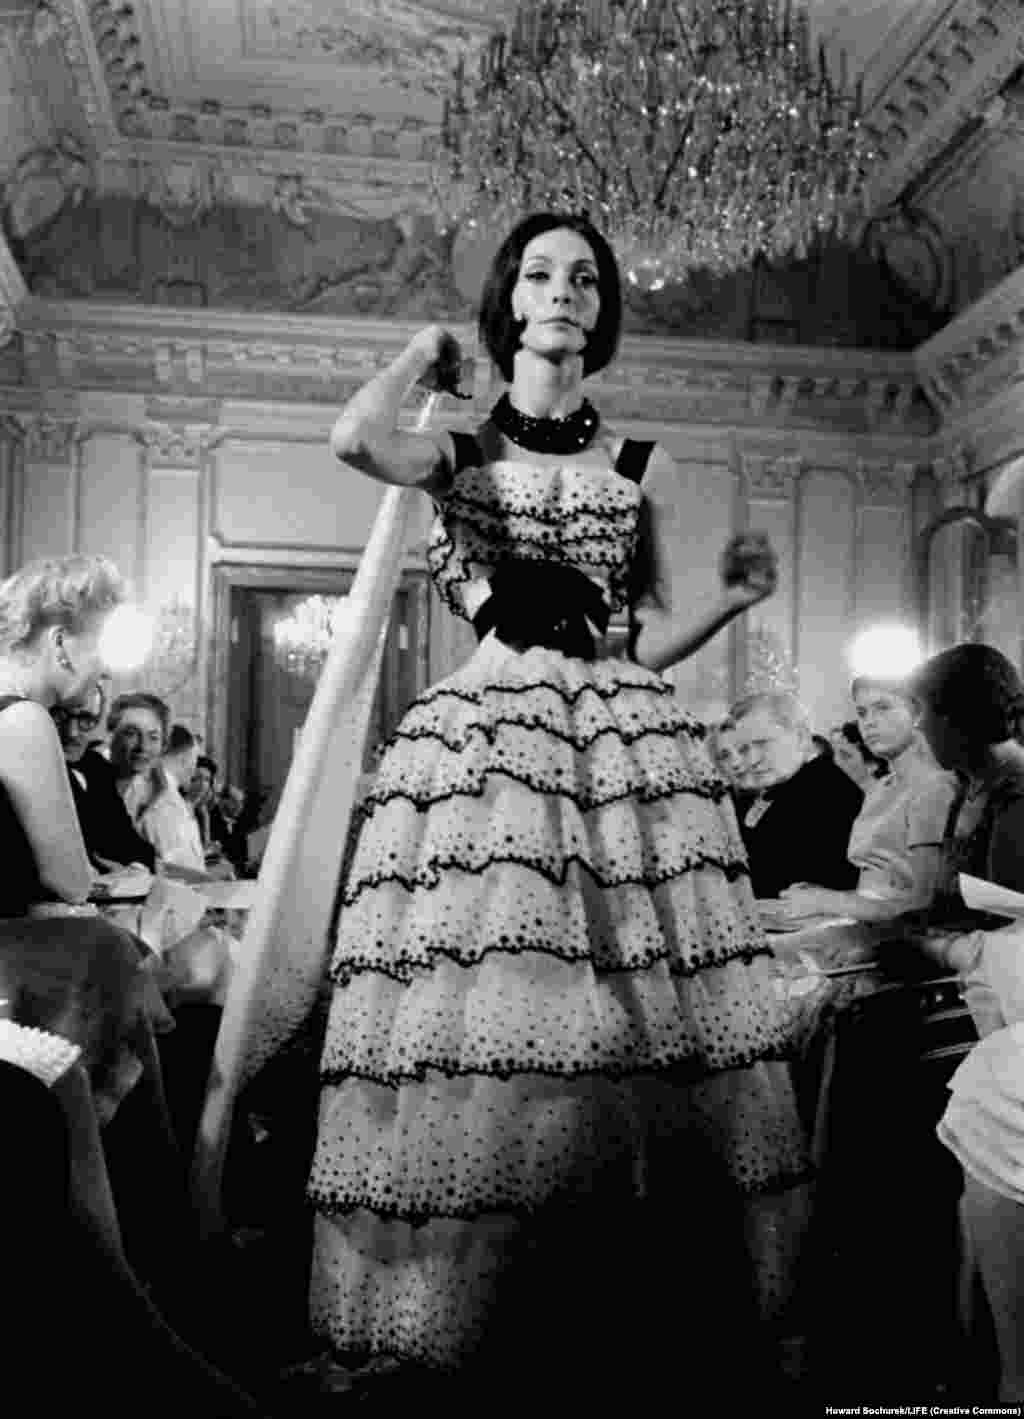 Kouka Denis modeling a Dior evening gown. The fashion house was headed at the time by a 23-year-old Yves Saint Laurent, who would go on to found his own company.